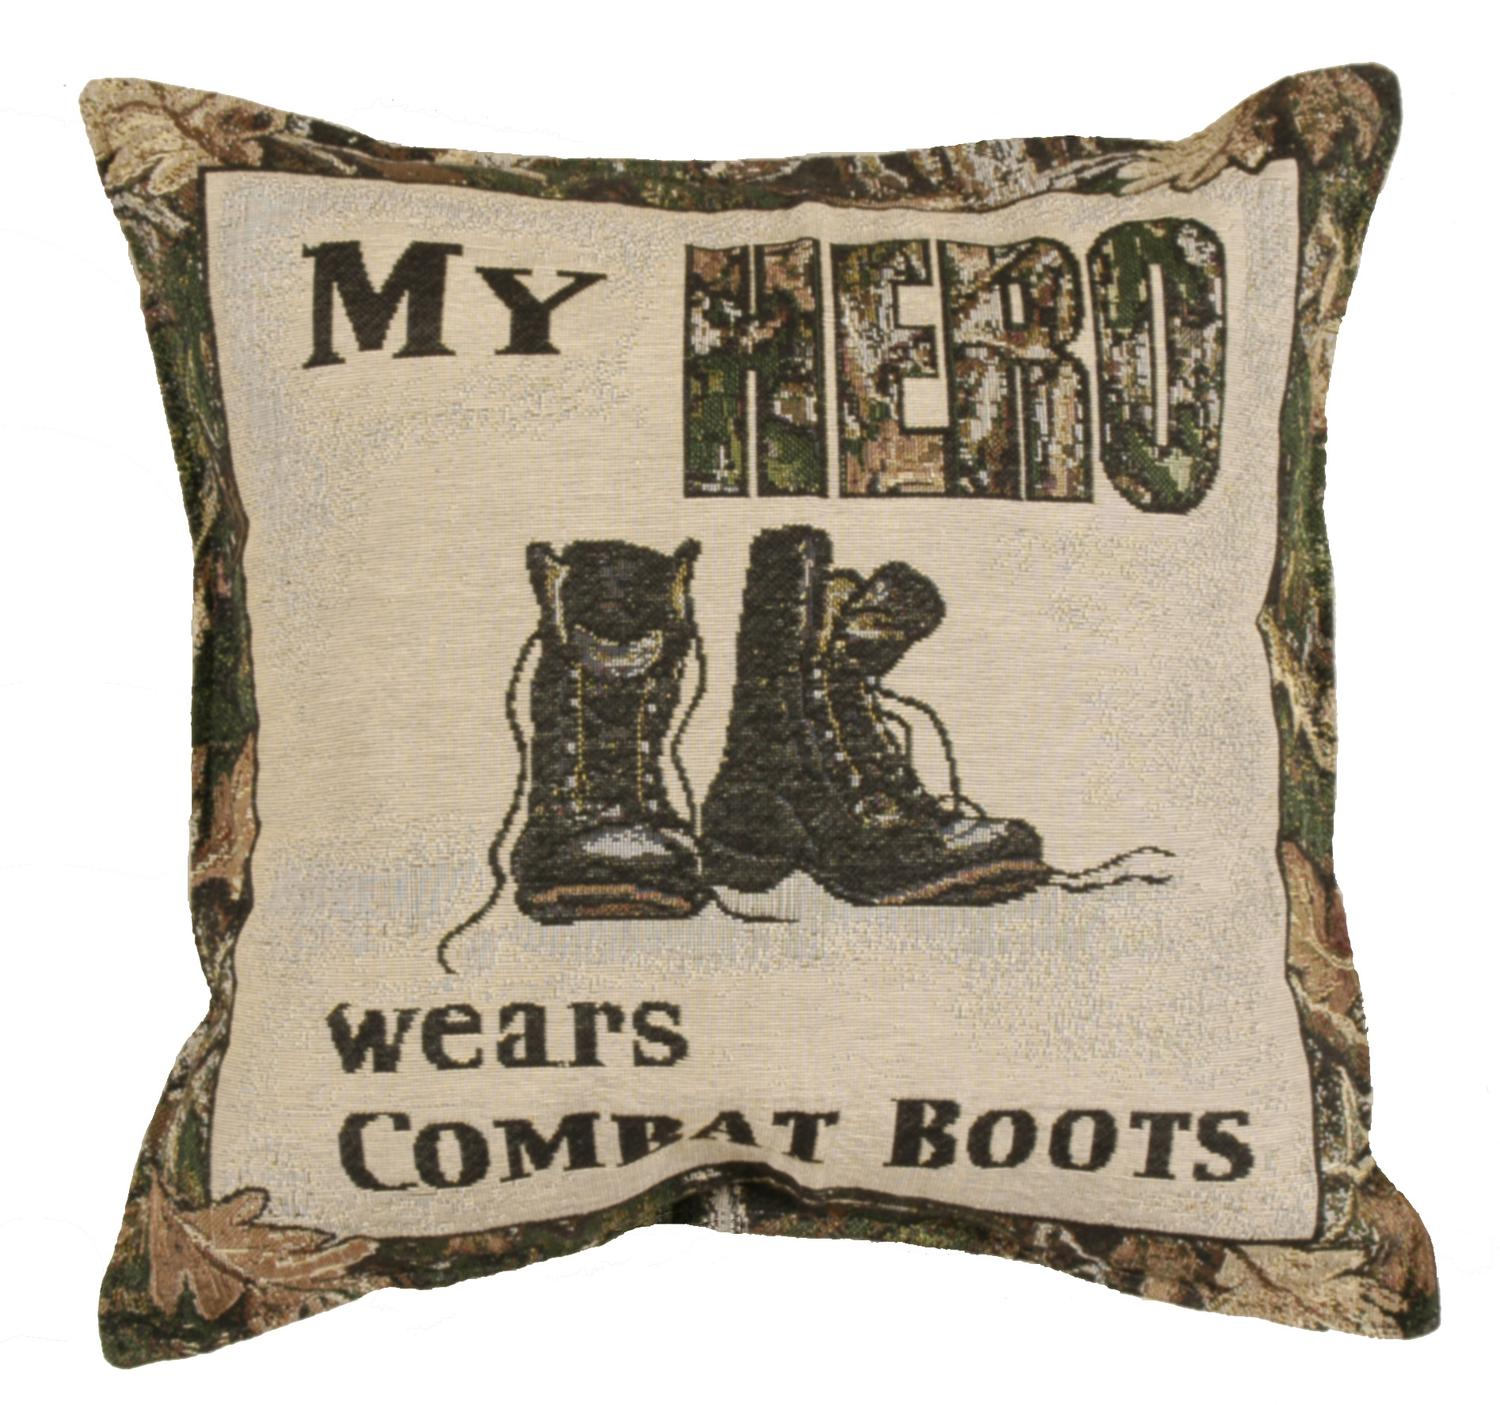 "Set of 2 �������My Hero"" Combat Boots Military Square Decorative Tapestry Throw Pillows 17"""